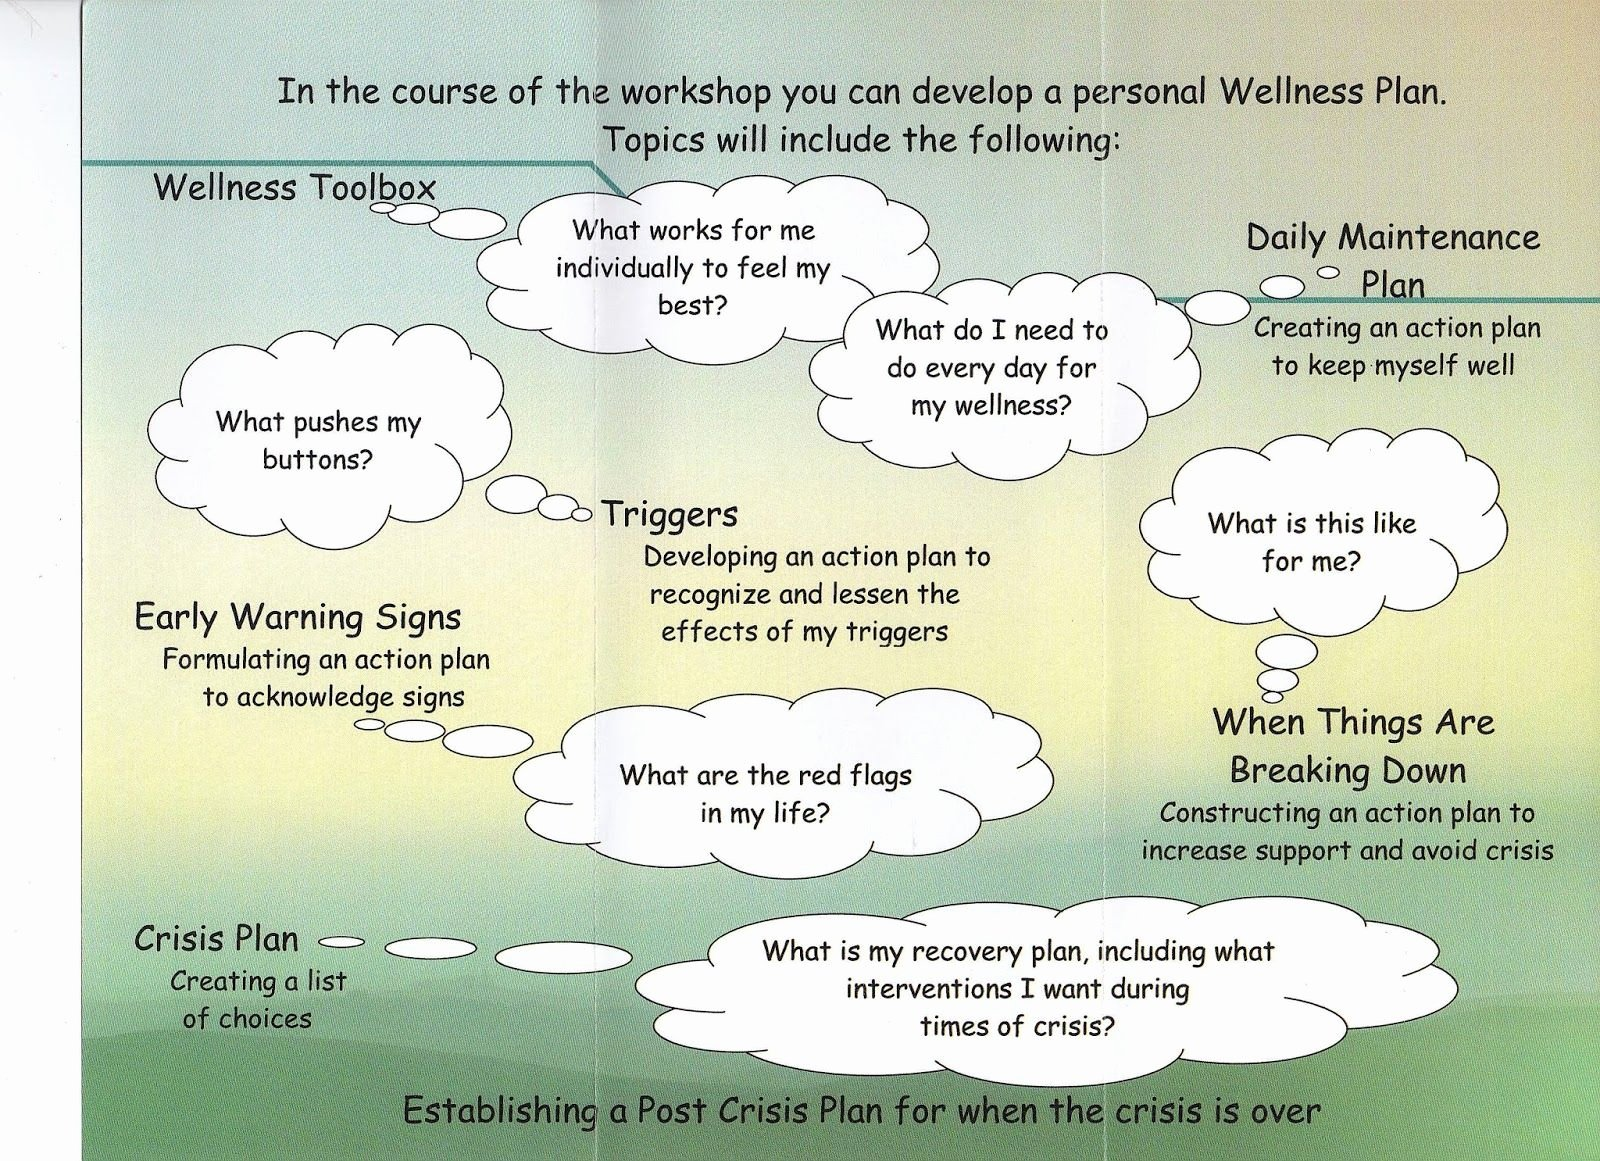 Wellness Recovery Action Plan Pdf Inspirational W R A P Wellness Recovery Action Plan Wellness tools